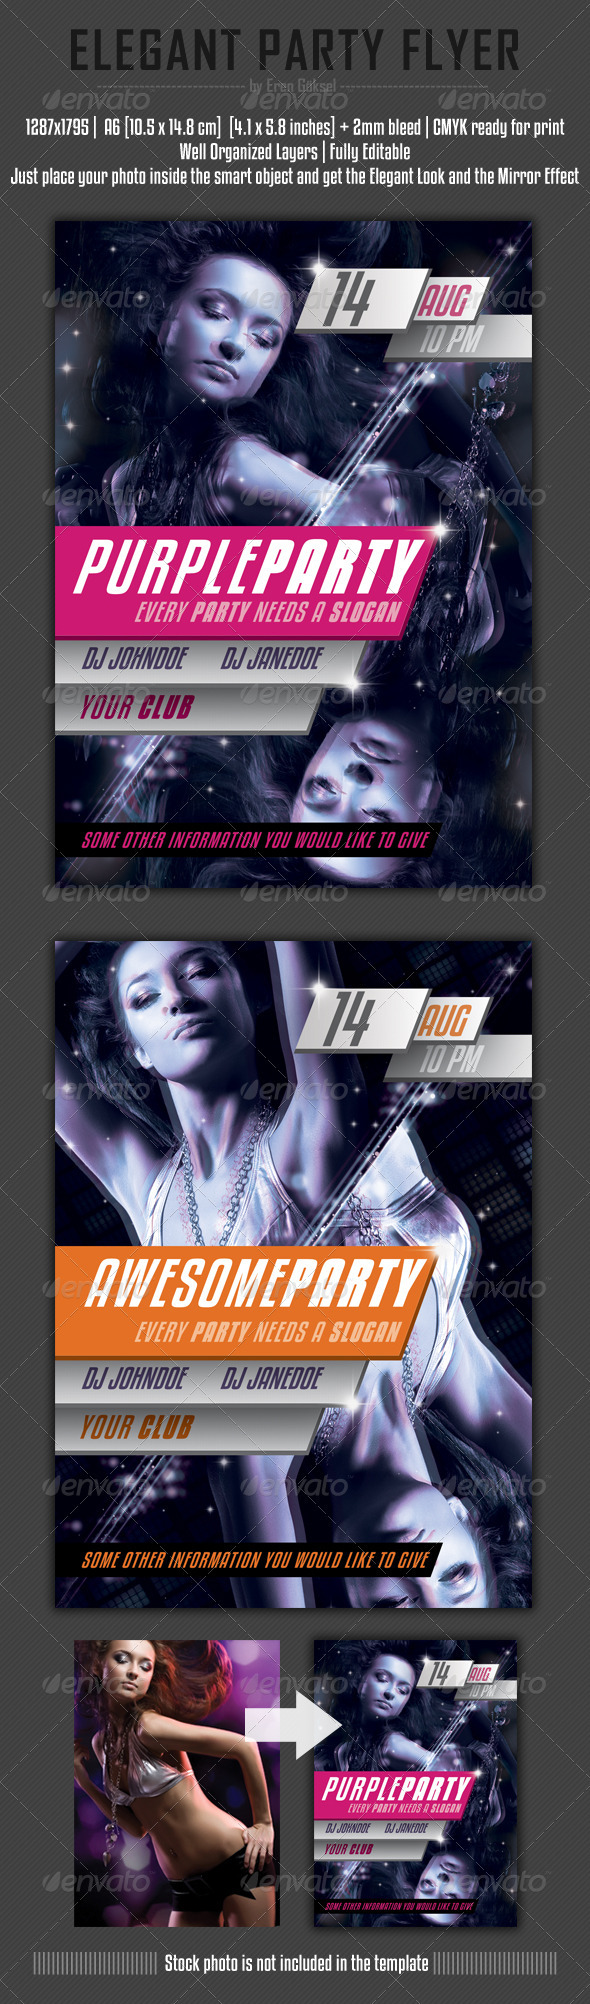 Elegant Party Flyer Template - Clubs & Parties Events